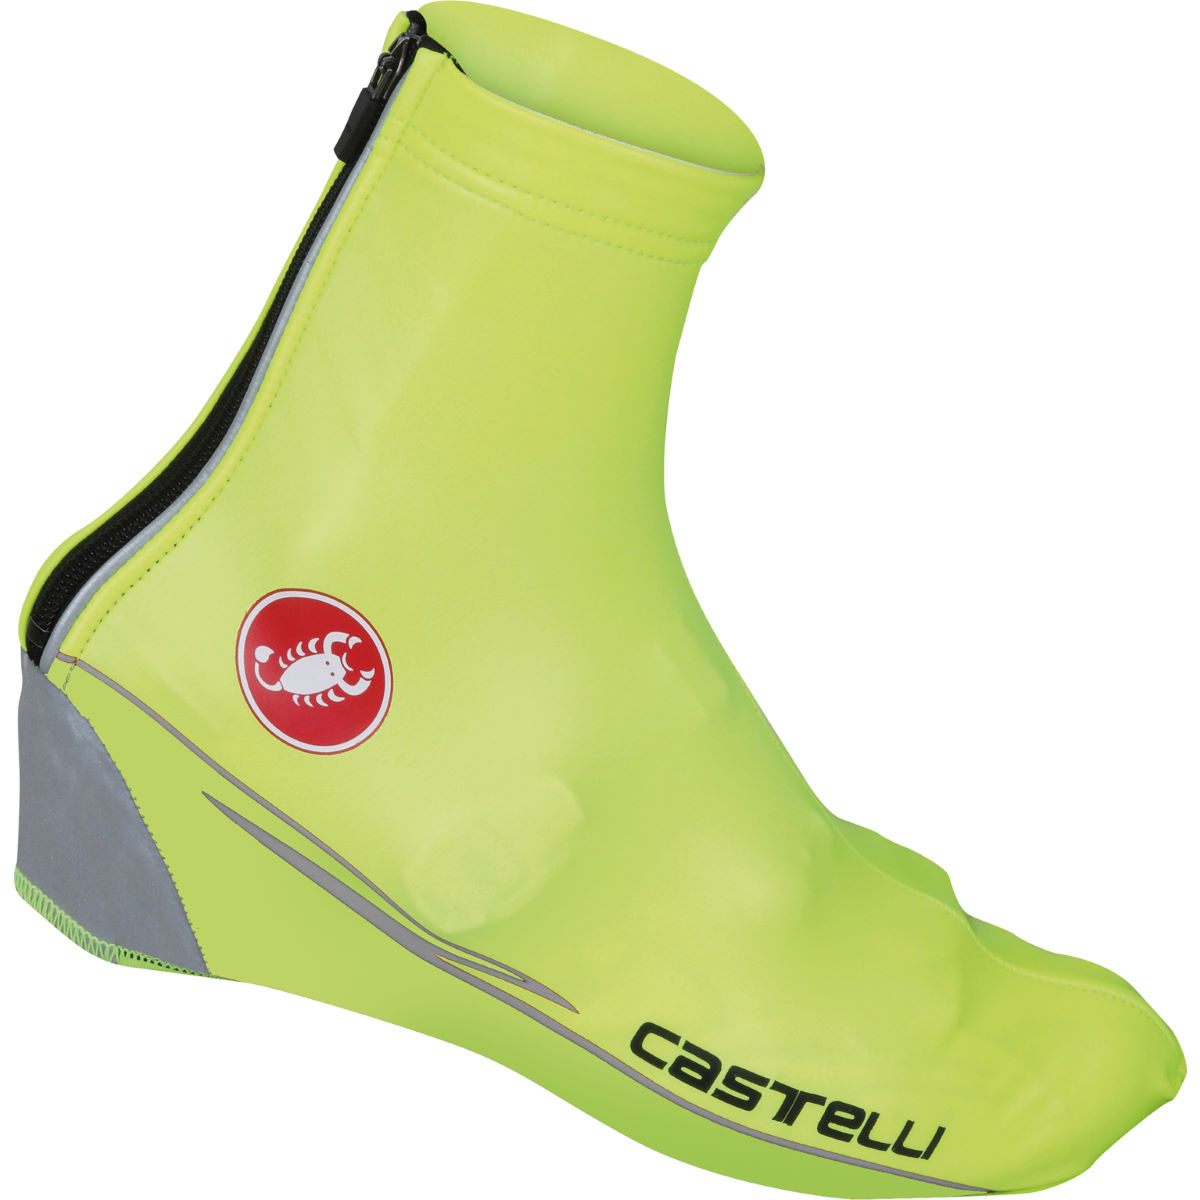 Couvre-chaussures Castelli Nano - S Yellow Fluo Couvre-chaussures